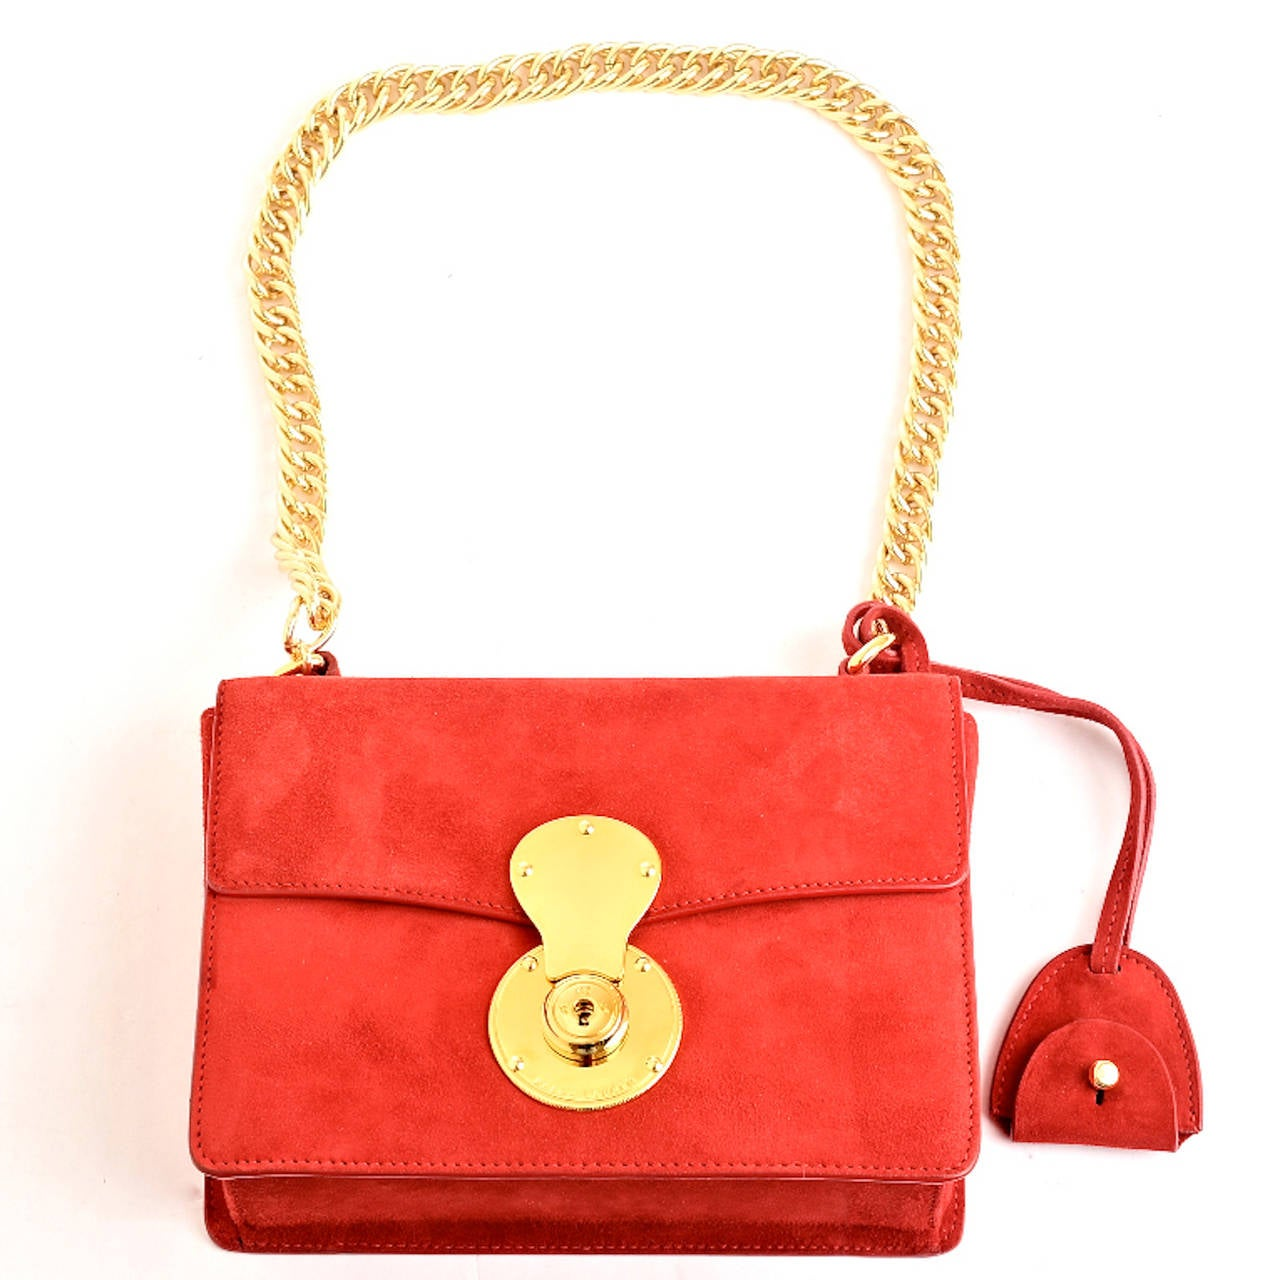 Ralph Lauren Red Suede Ricky Chain Bag For Sale 2